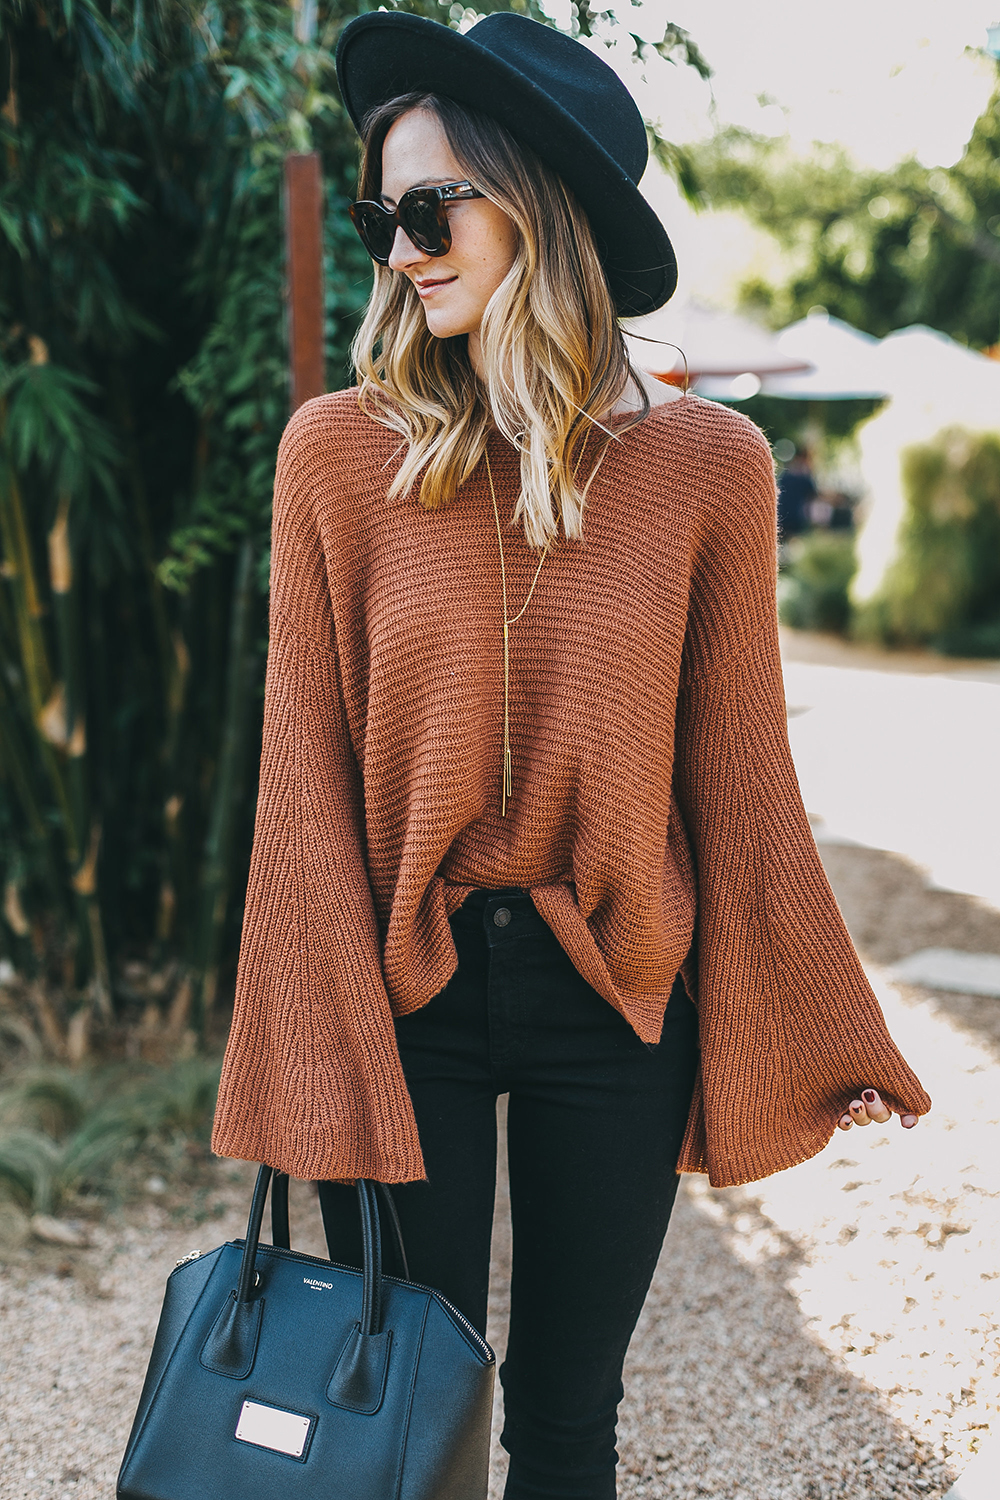 livvyland-blog-olivia-watson-austin-texas-fashion-lifestyle-blogger-fall-orange-slouchy-sweater-black-skinny-jeans-outfit-boho-fall-idea-9